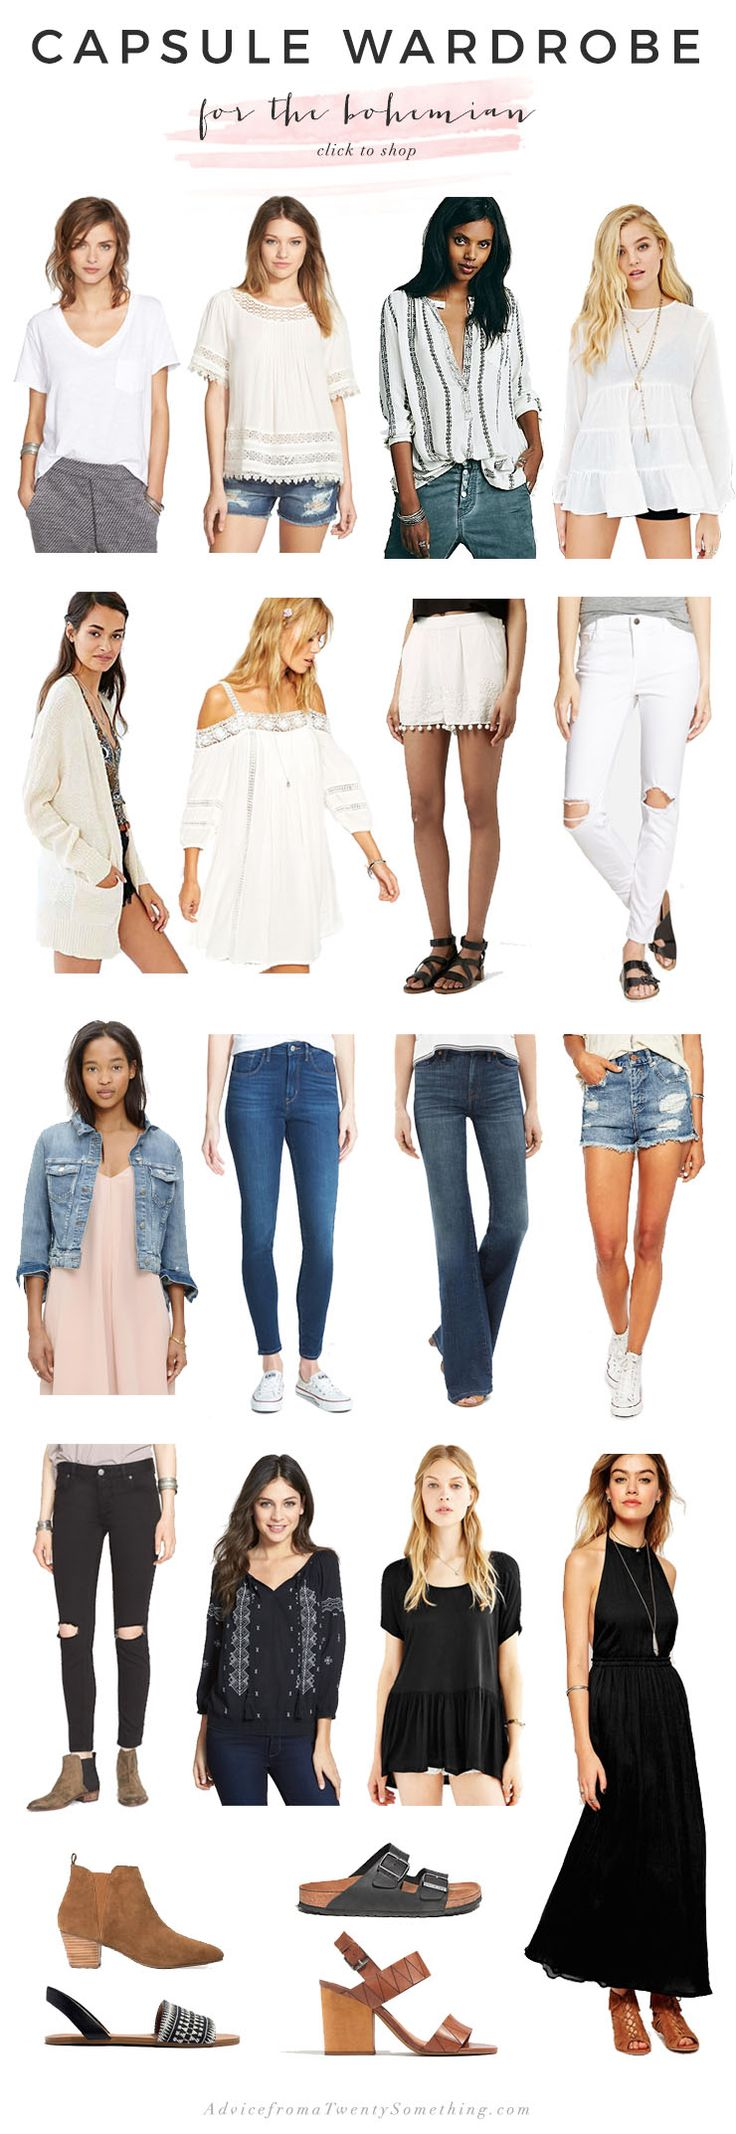 Capsule Wardrobe: 17 Best Ideas About Capsule Wardrobe Work On Pinterest